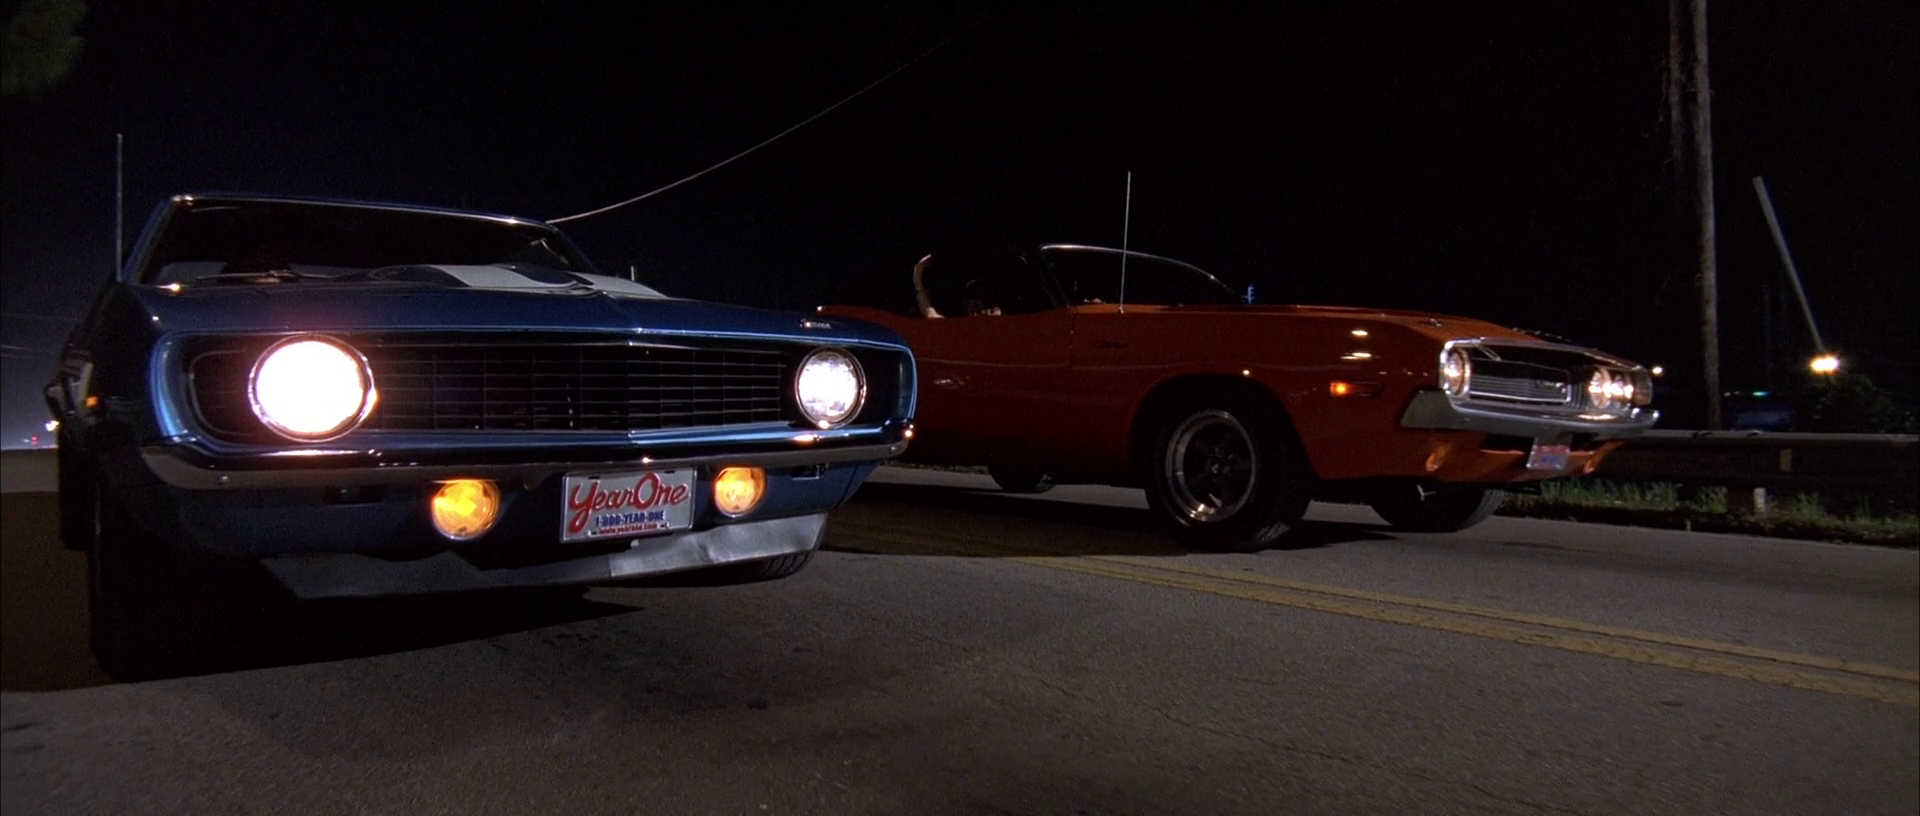 Image - American Muscle - 2 Fast 2 Furious.png   The Fast and the ...